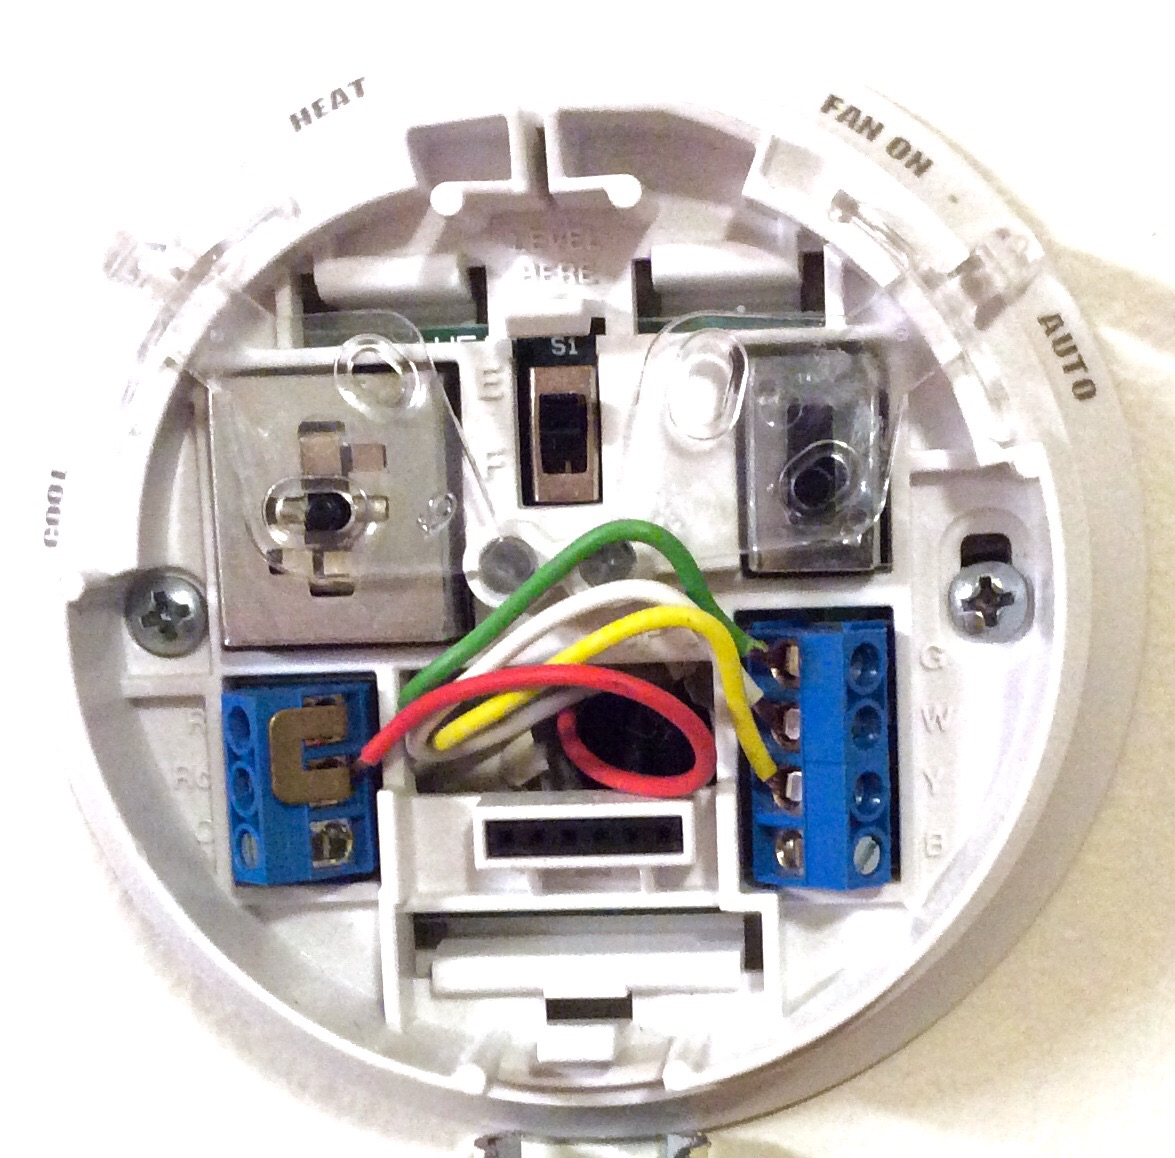 4 Wire Thermostat Wiring Color Code Toms Tek Stop Phone Picture Of The Mounting Plate With Four Wires